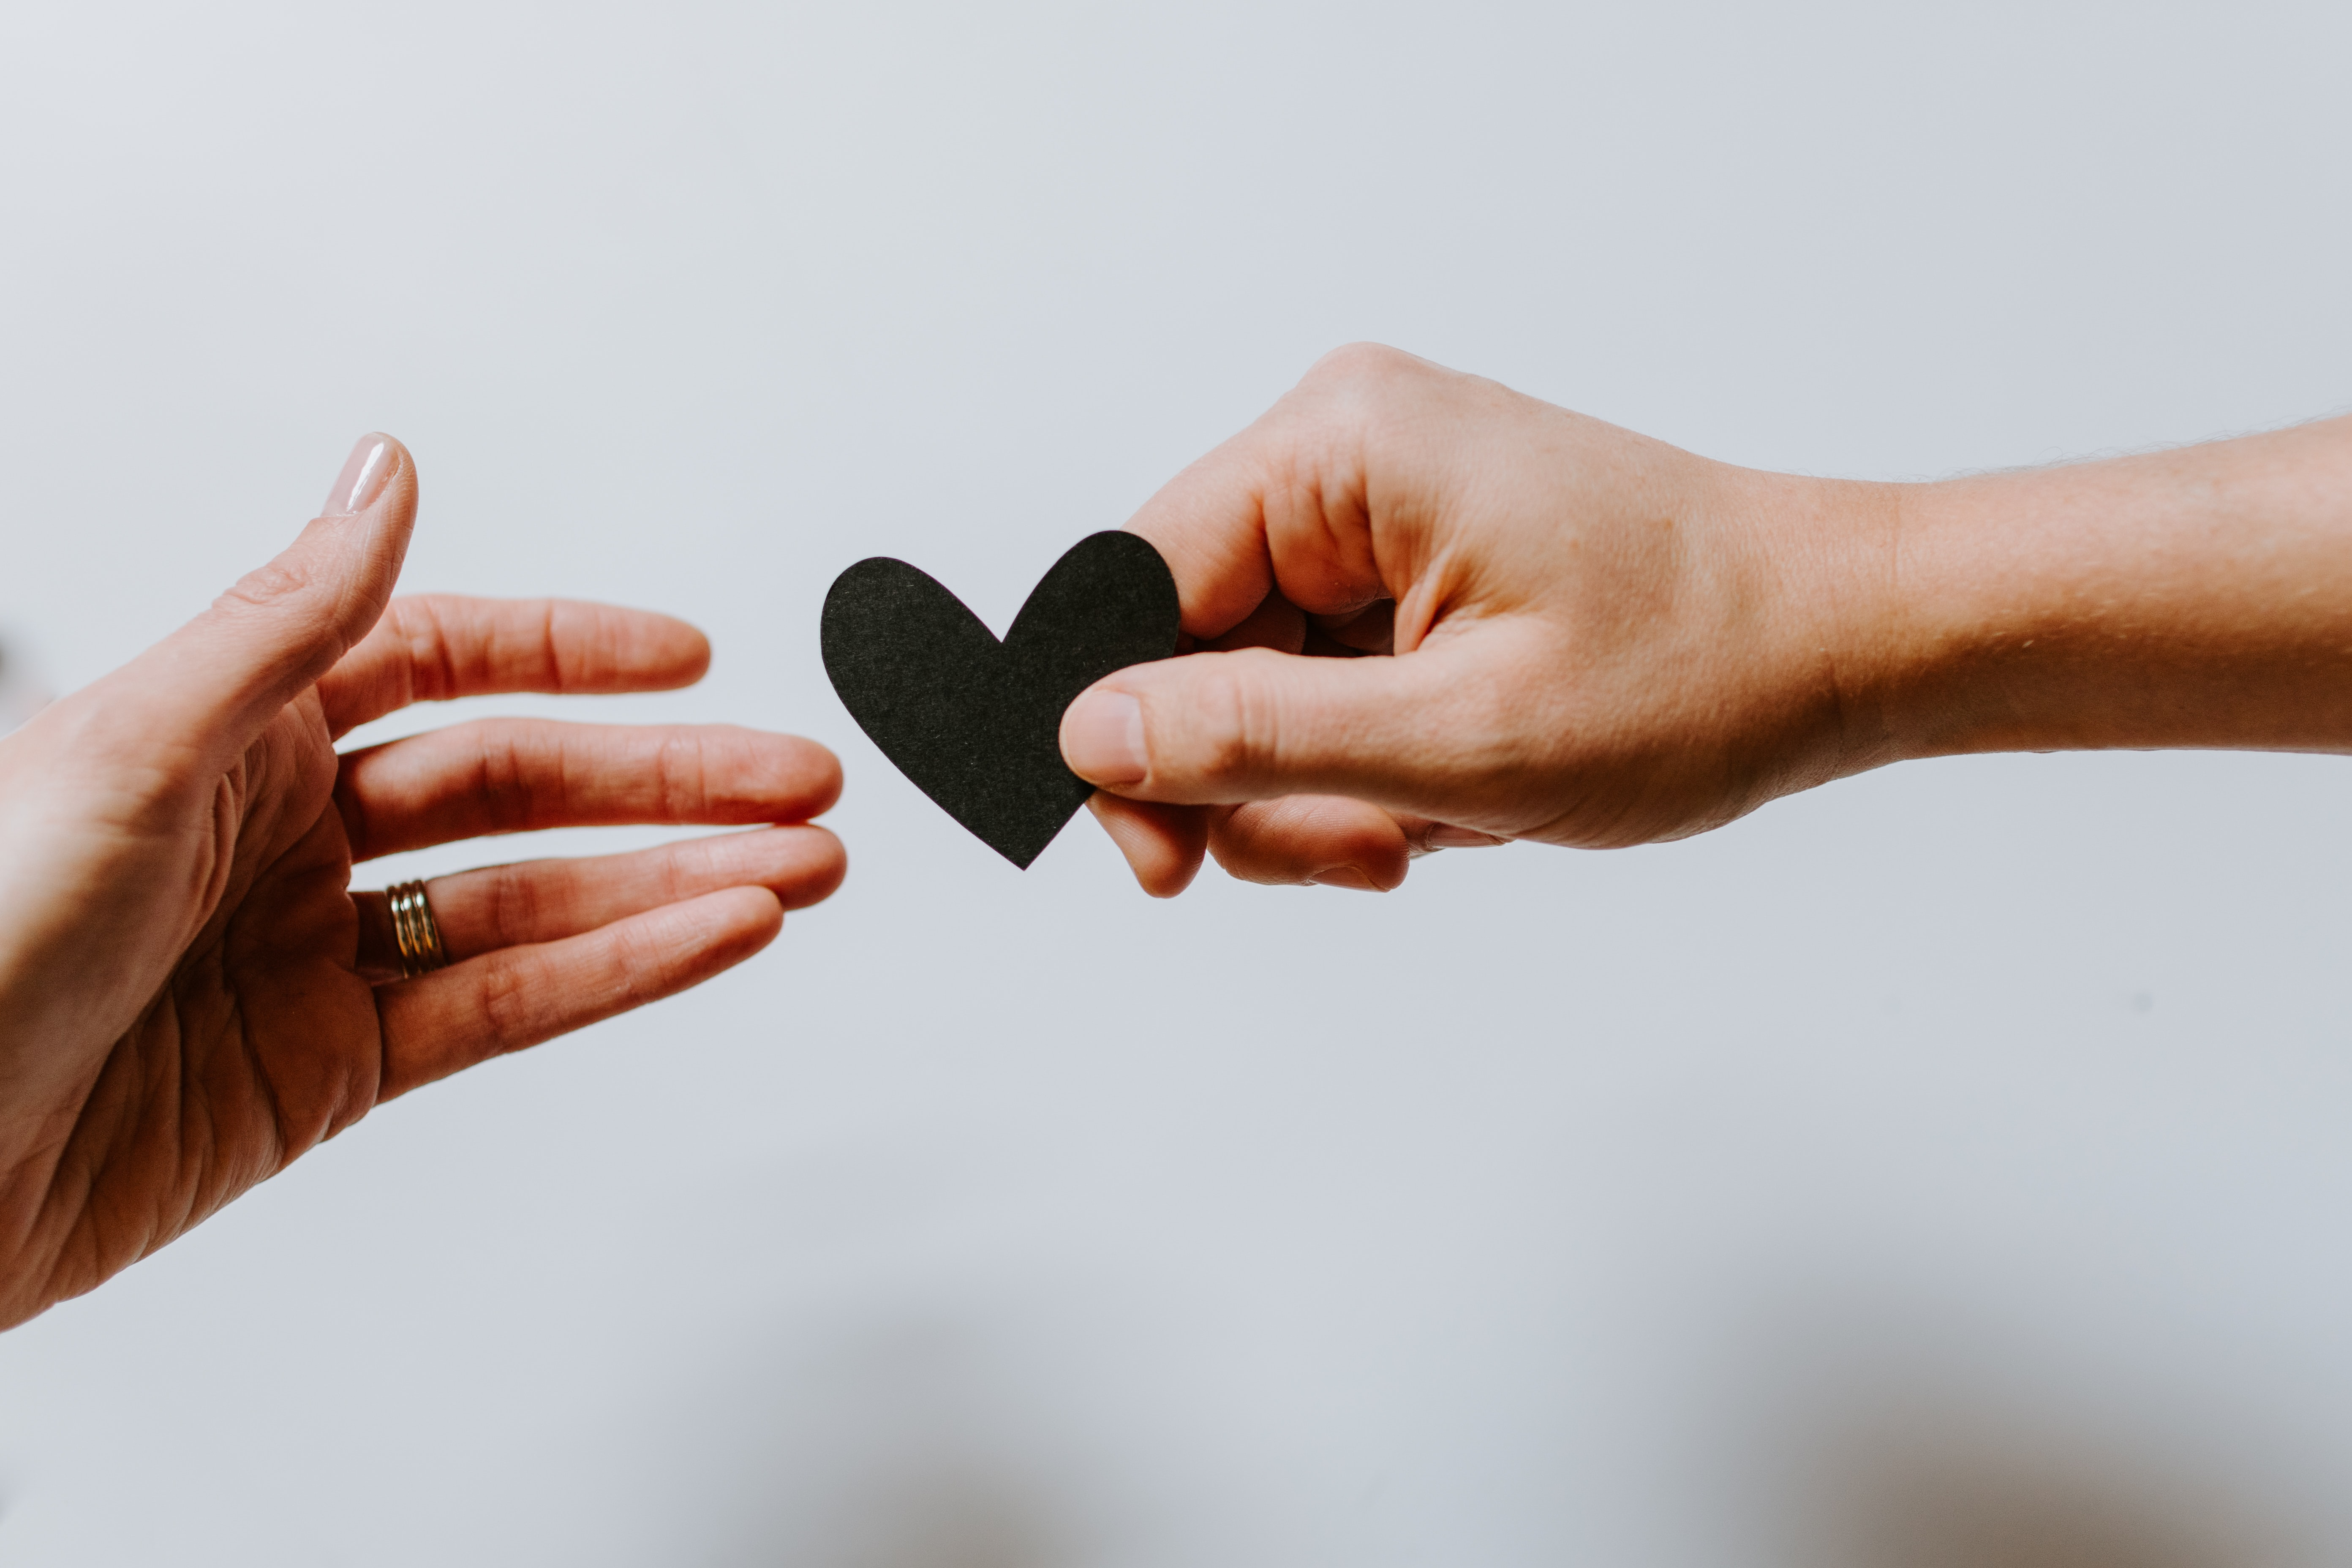 Two hands passing a small black paper heart